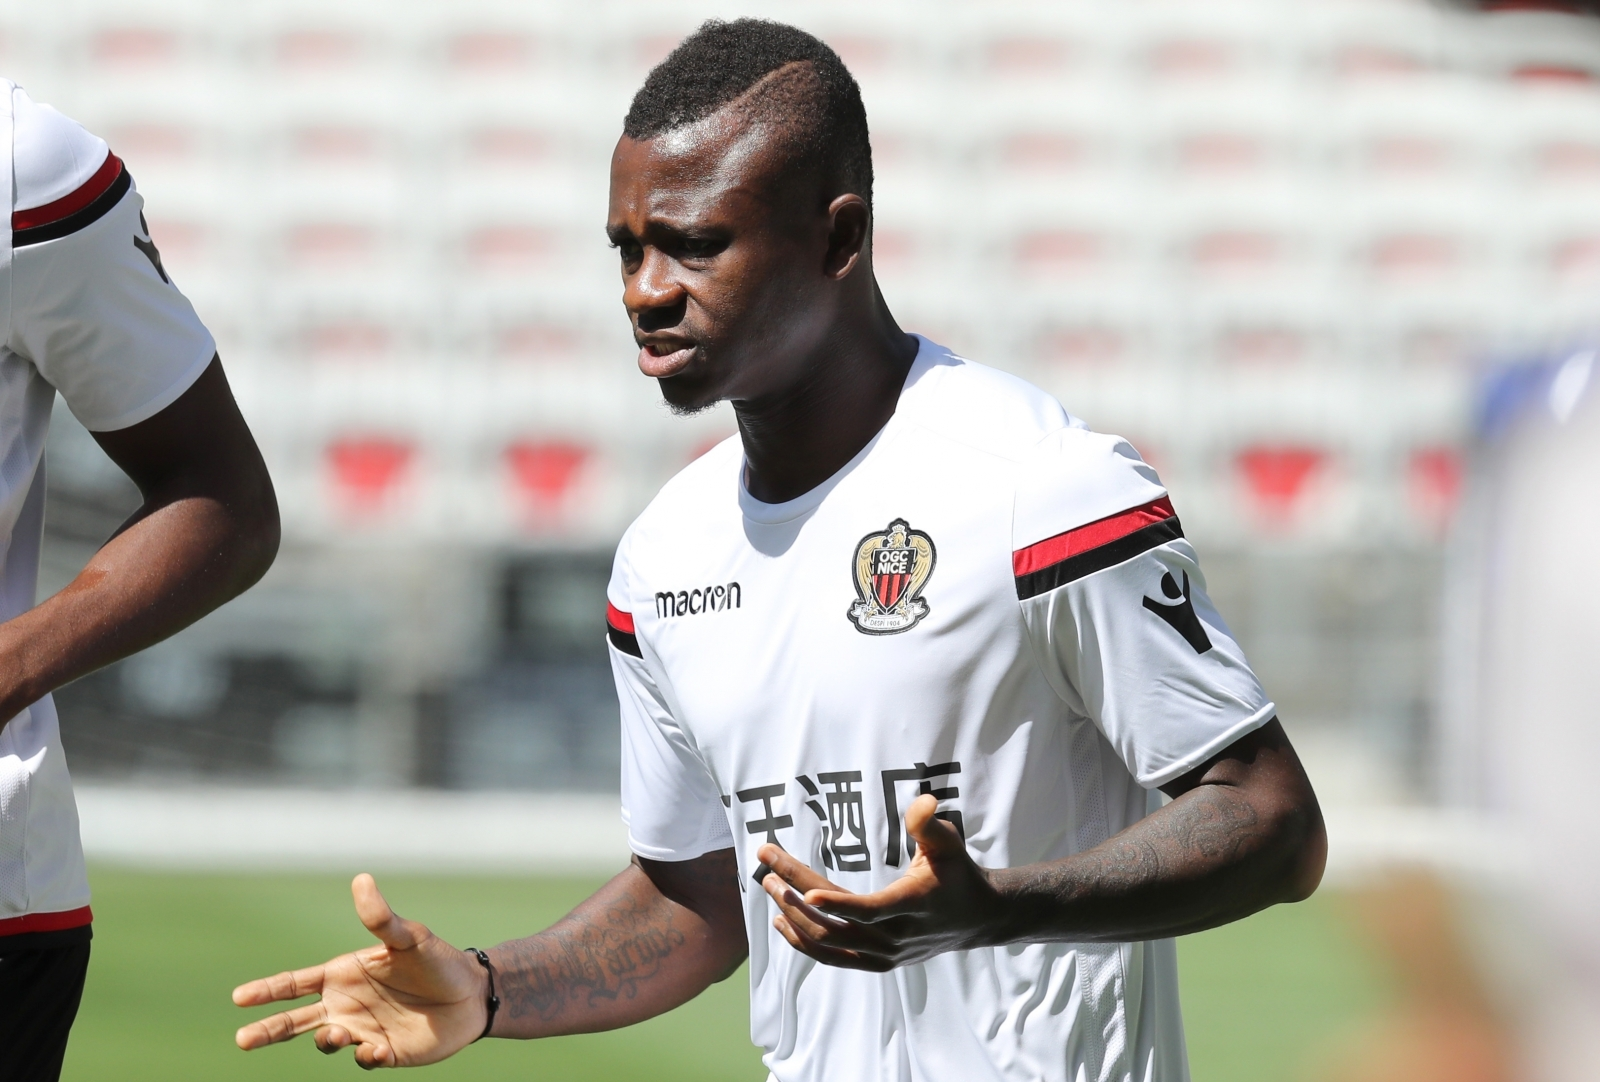 Man Utd 'leading four-way race' for ex-Barca target Seri